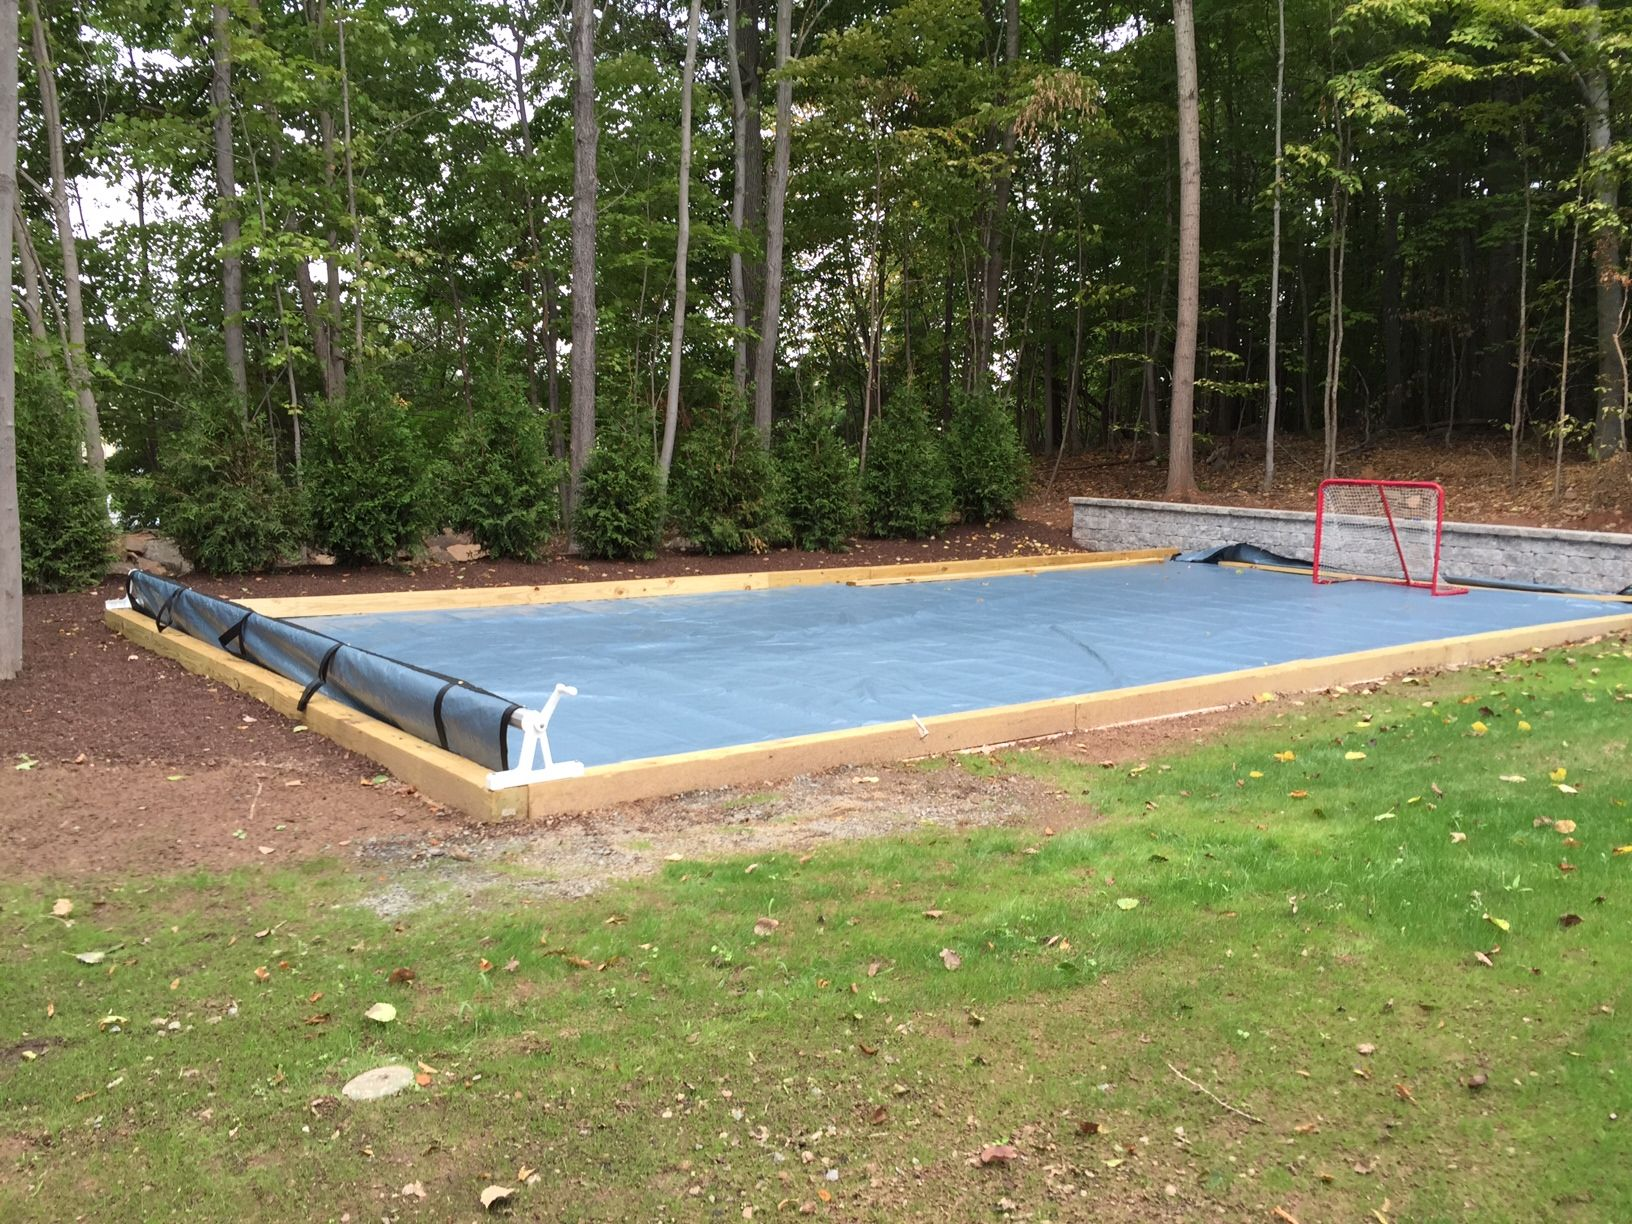 creative use of a pool cover to keep the synthetic ice surface